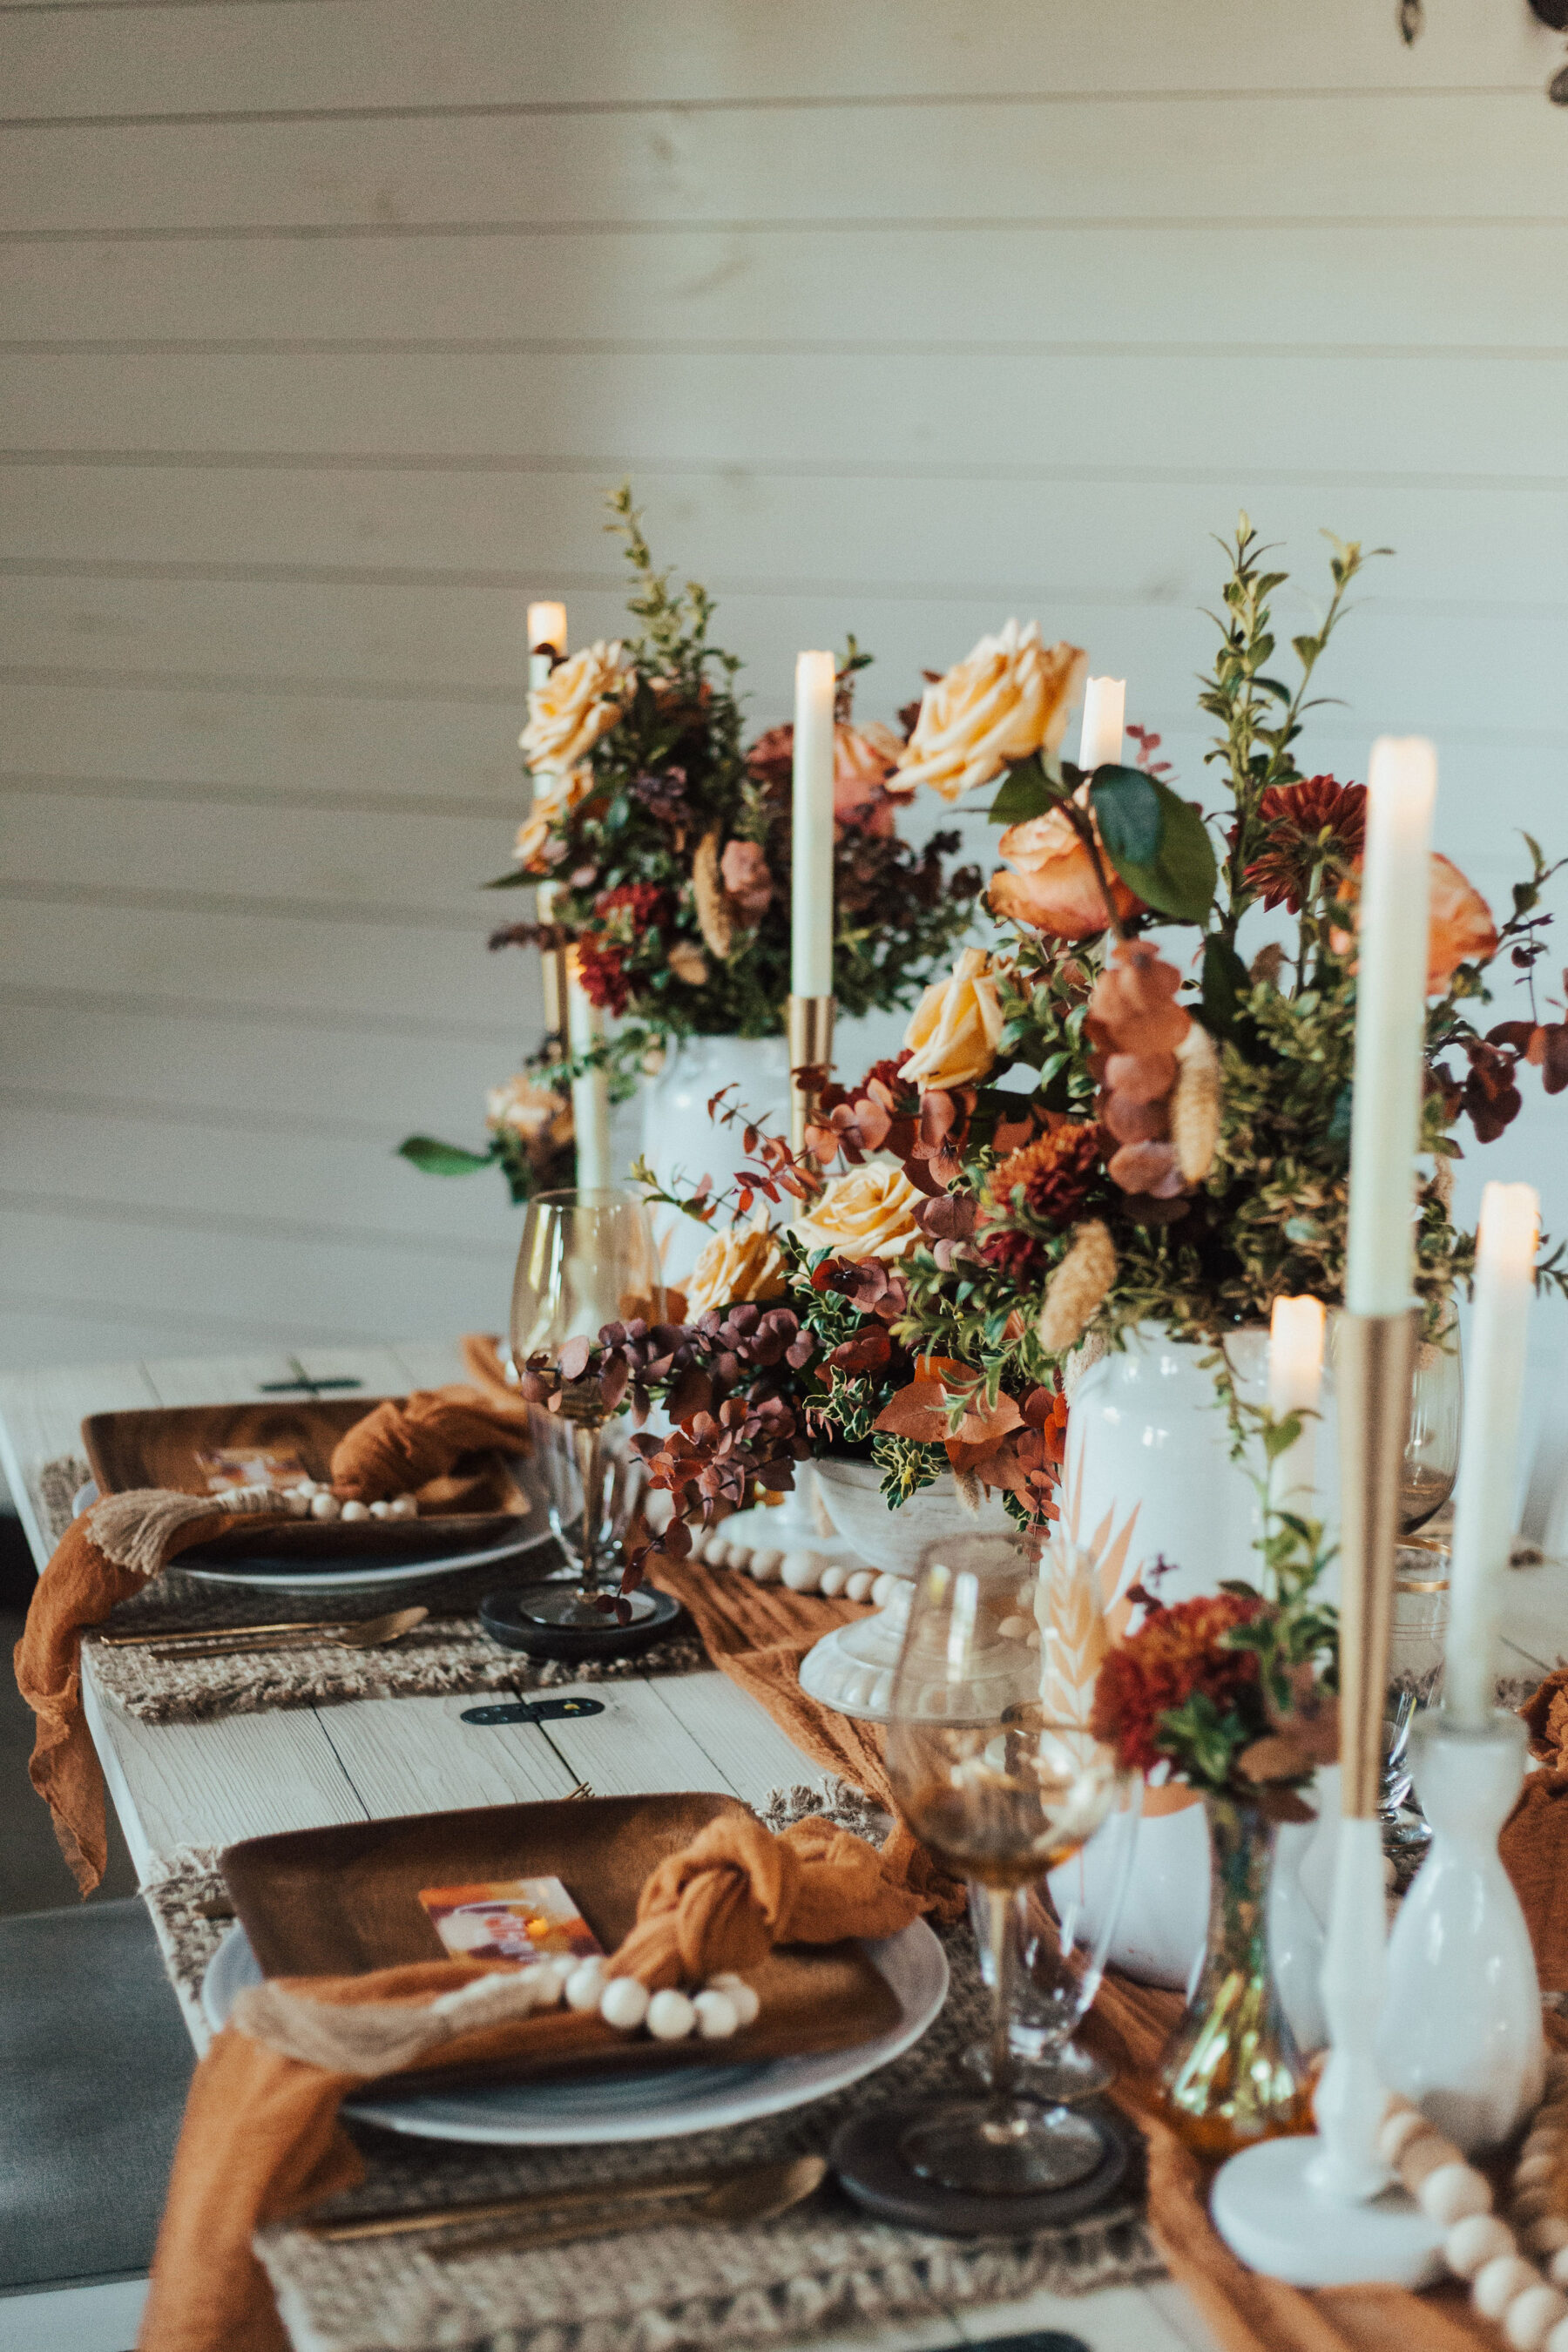 Wedding flower designs: Bright Bohemian Photo Shoot from Ina J Designs